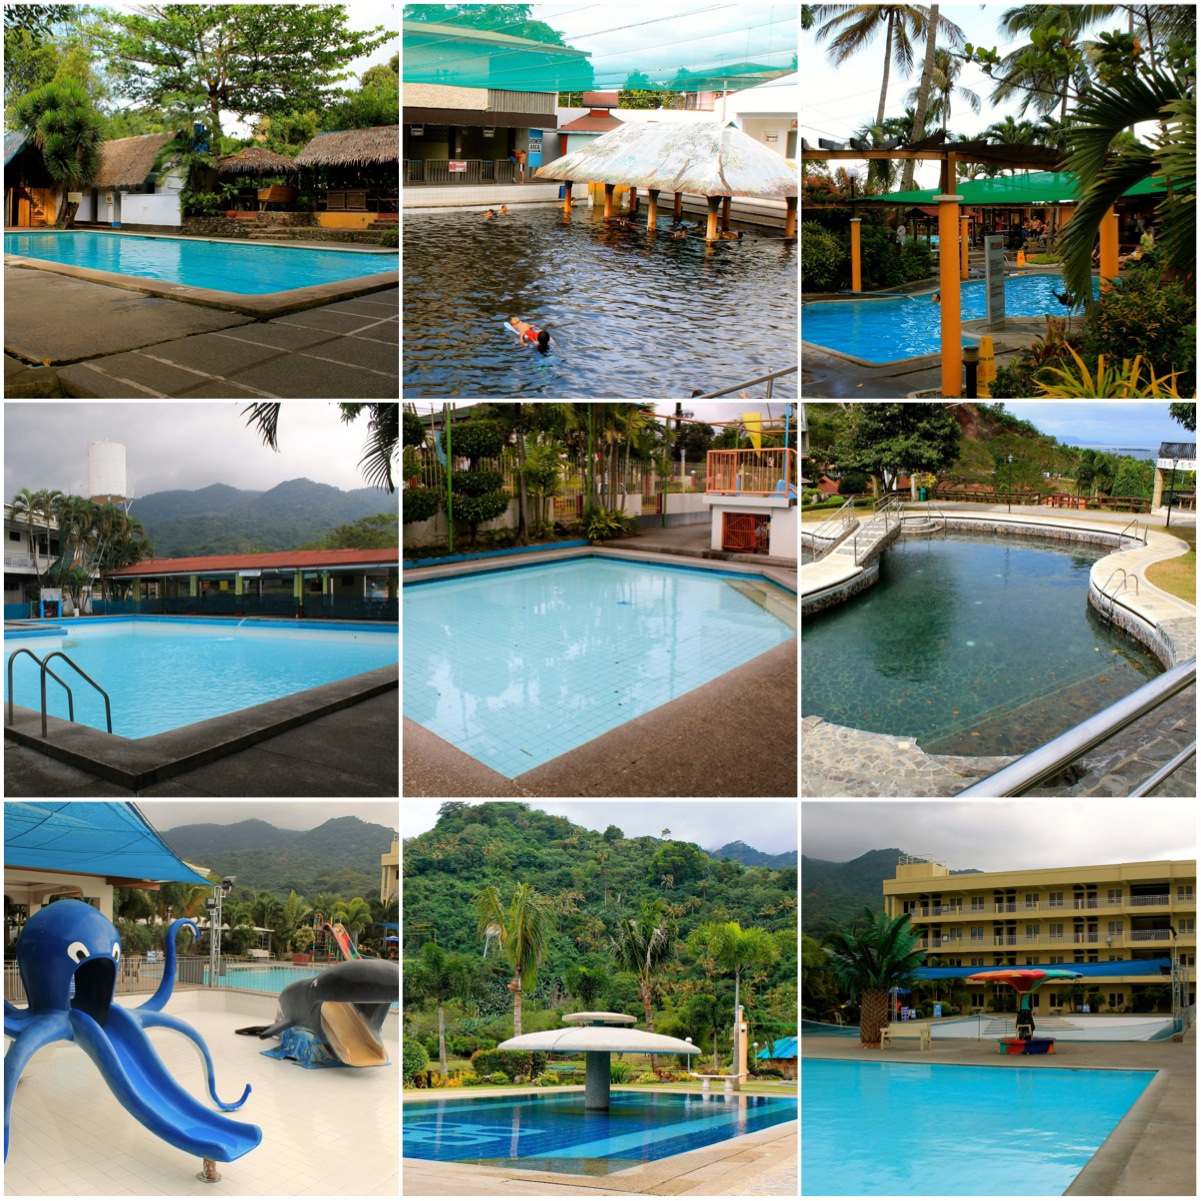 Hot spring resort pools laguna philippines